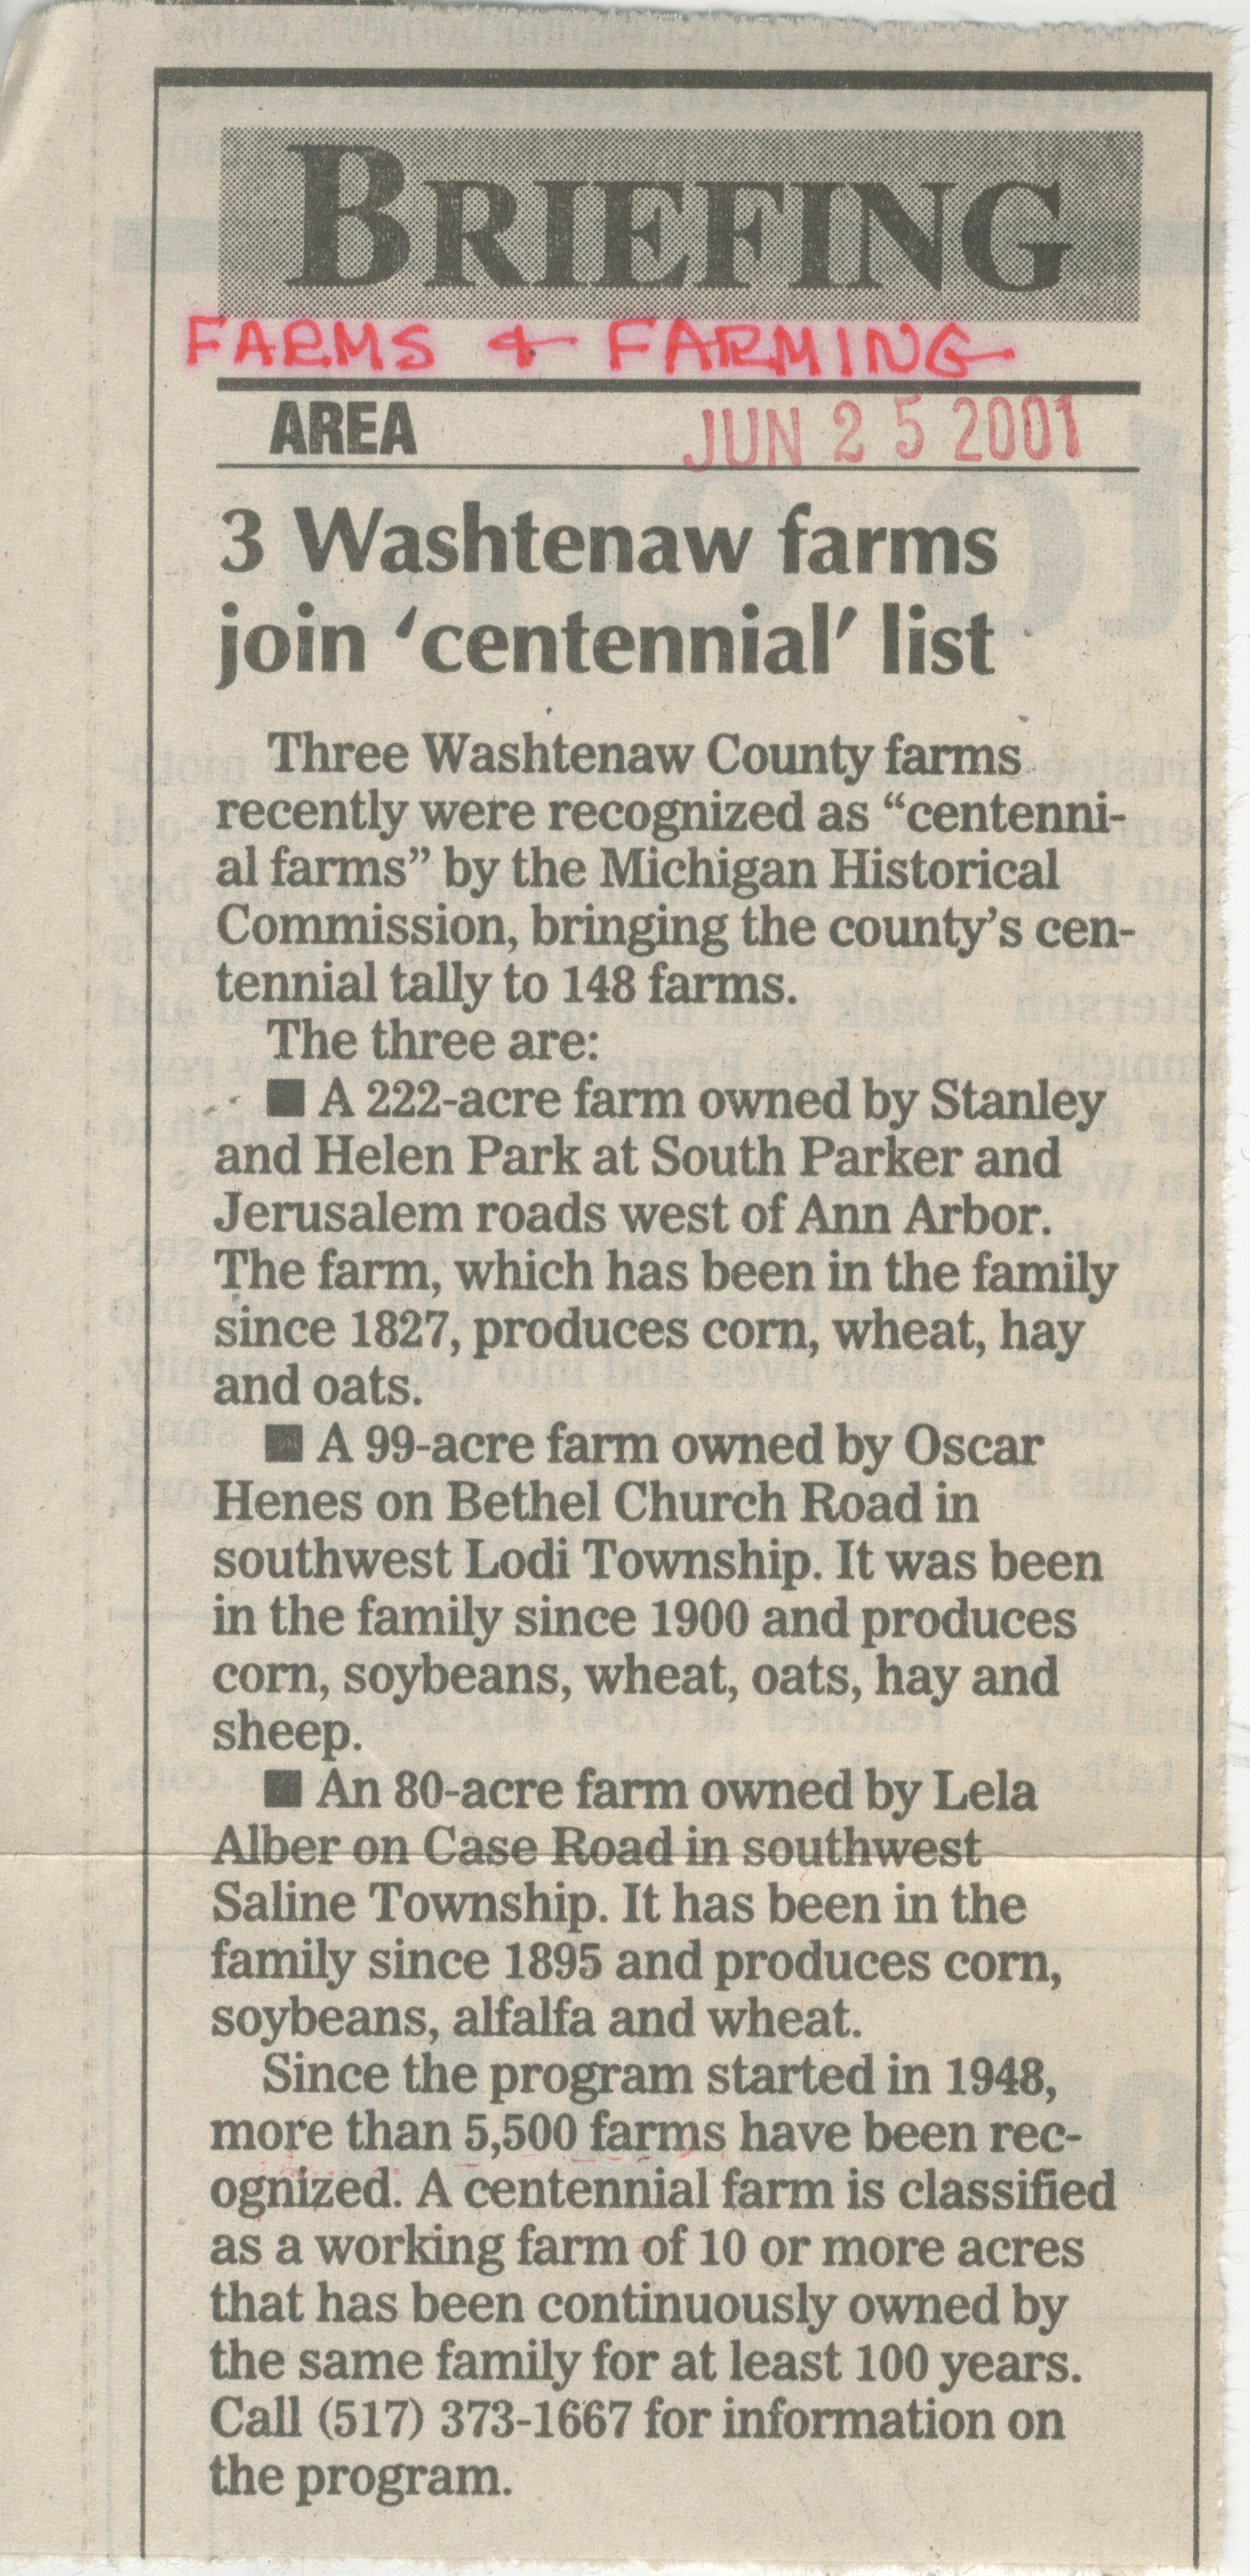 3 Washtenaw Farms Join 'Centennial' List image